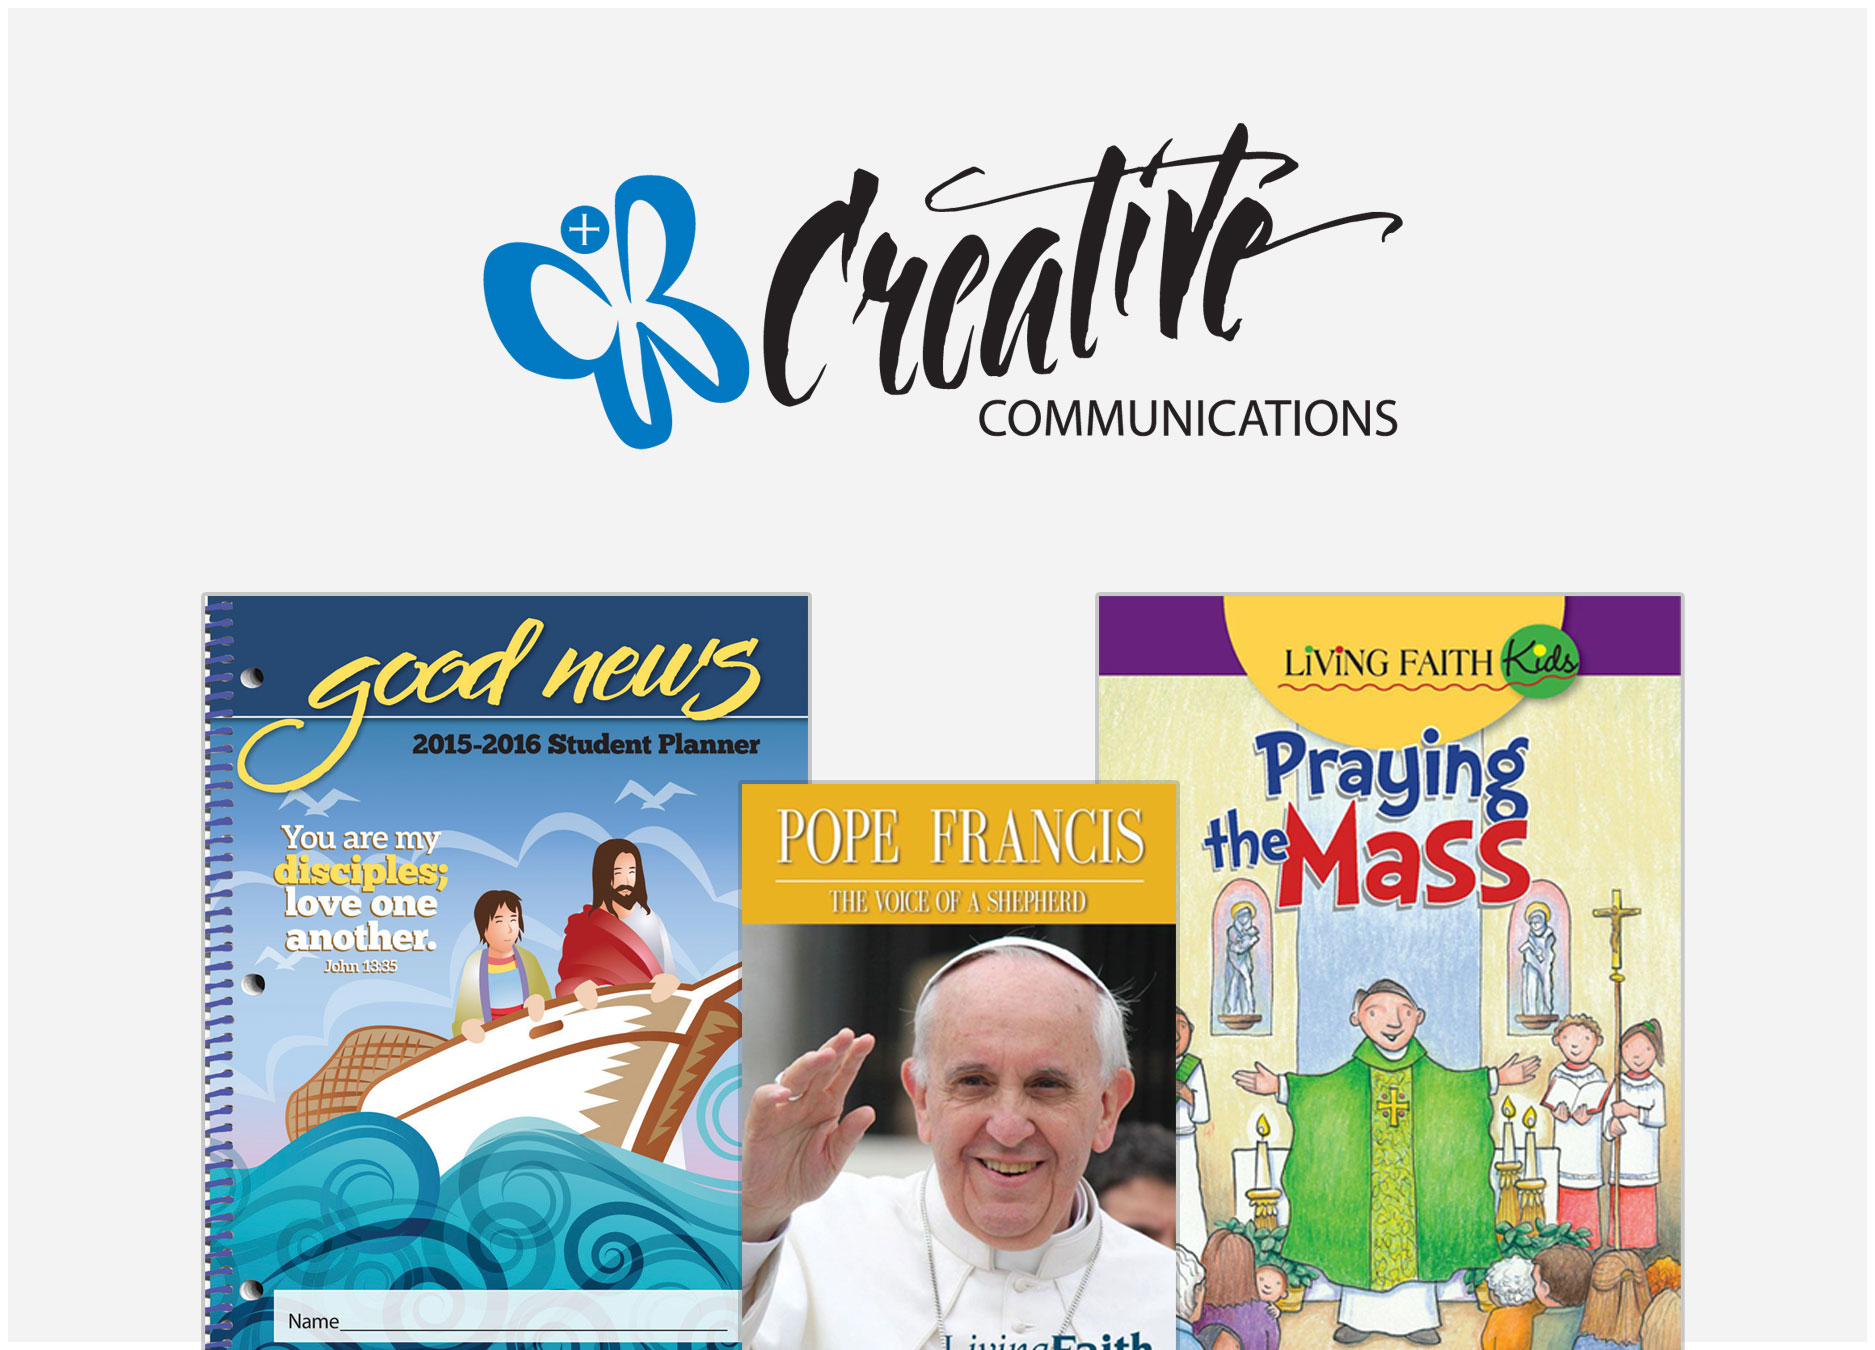 Creative Communications for the Parish